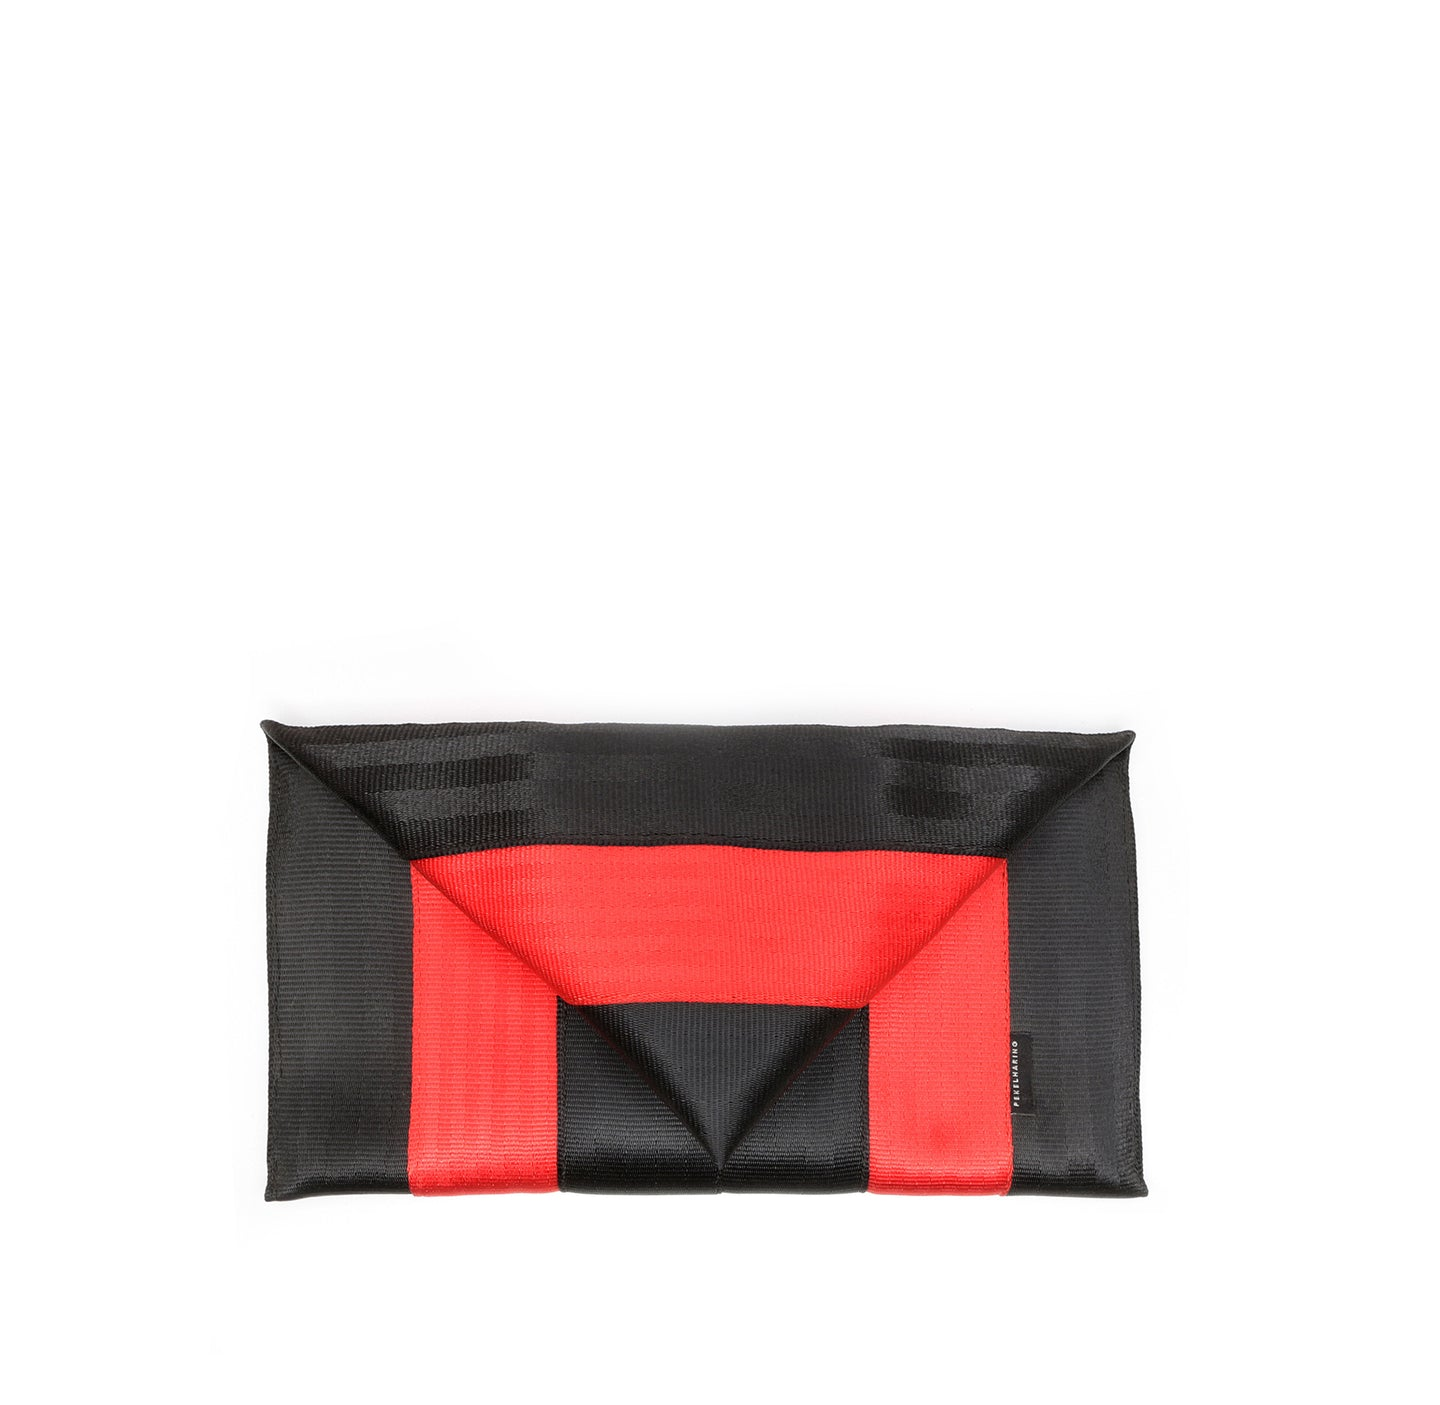 Clutch Black Red front